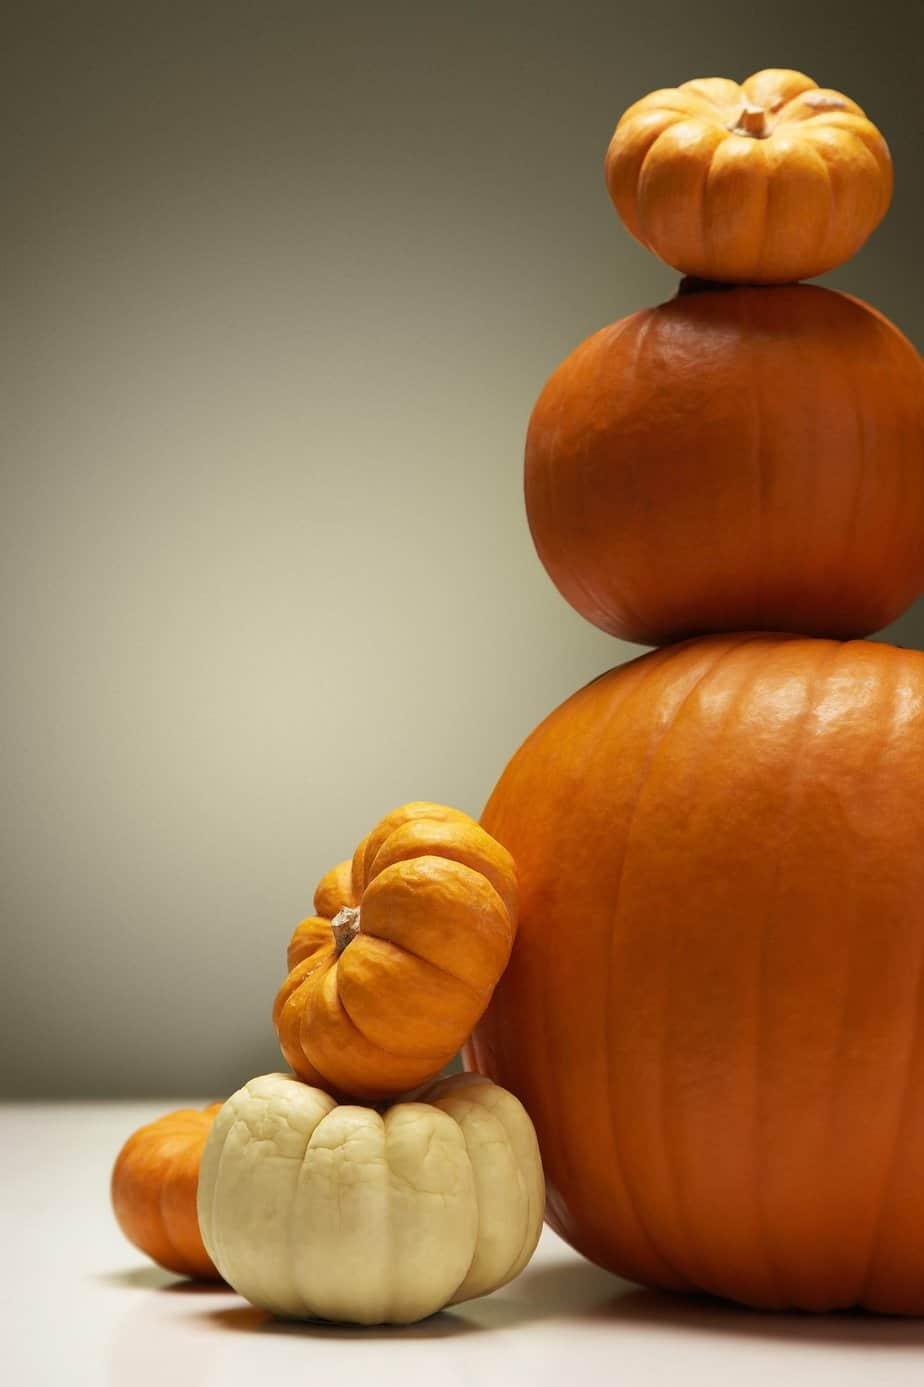 Picture of a pumpkin which help with healthy eating